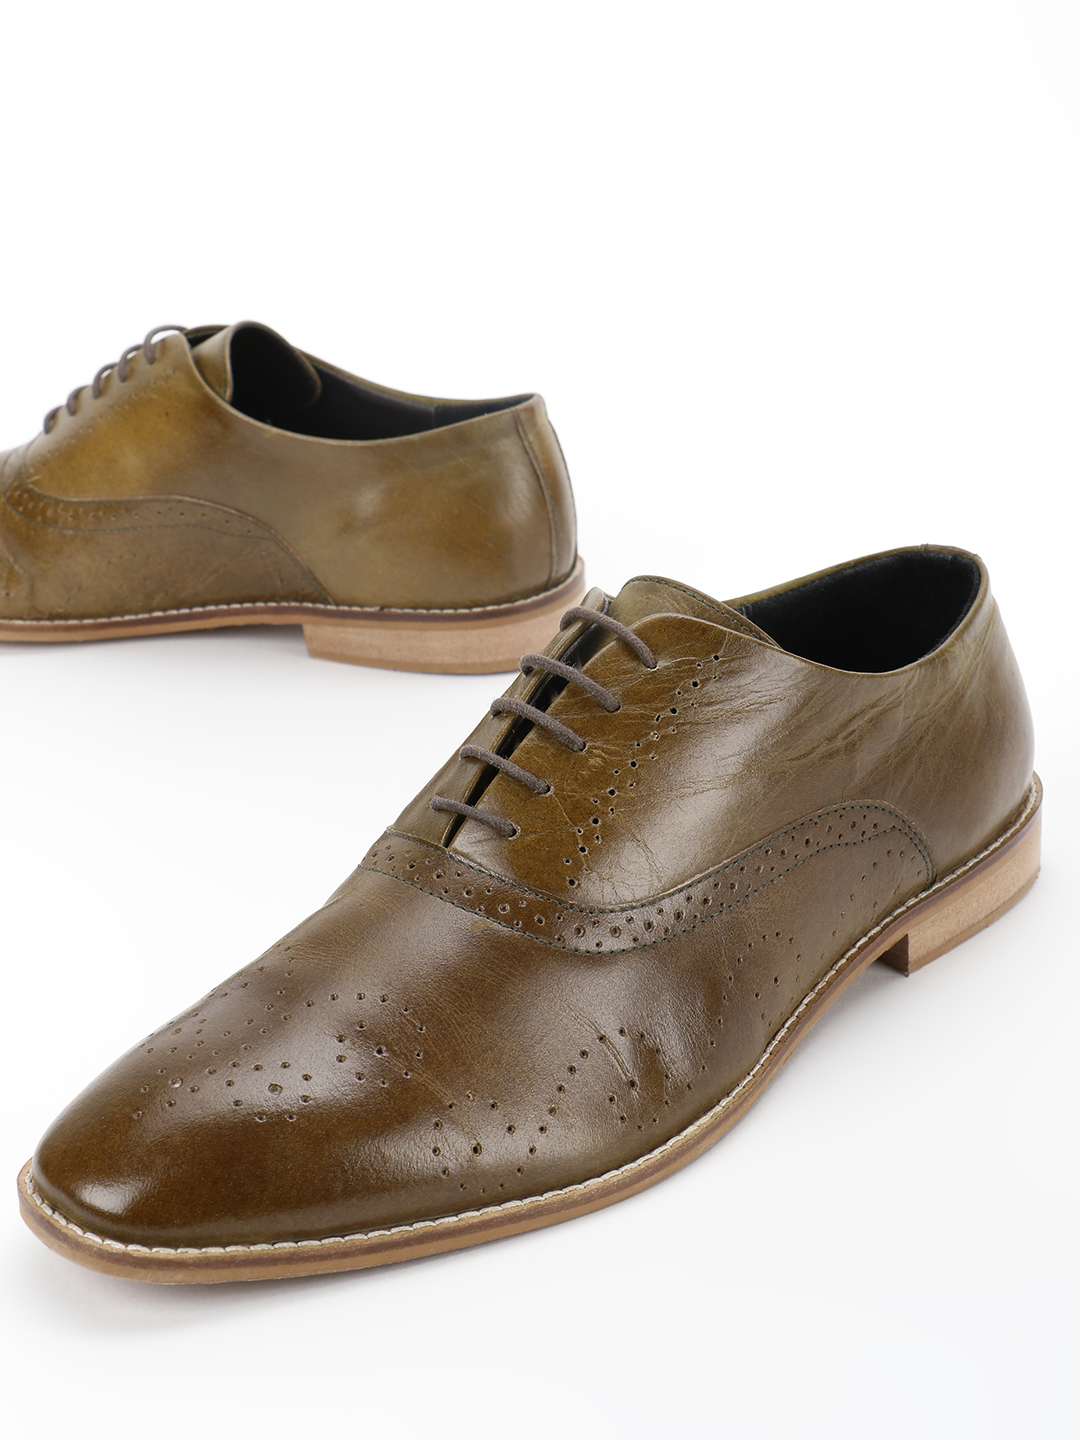 Marcello & Ferri Green Leather Brogue Punches Oxford Shoes 1